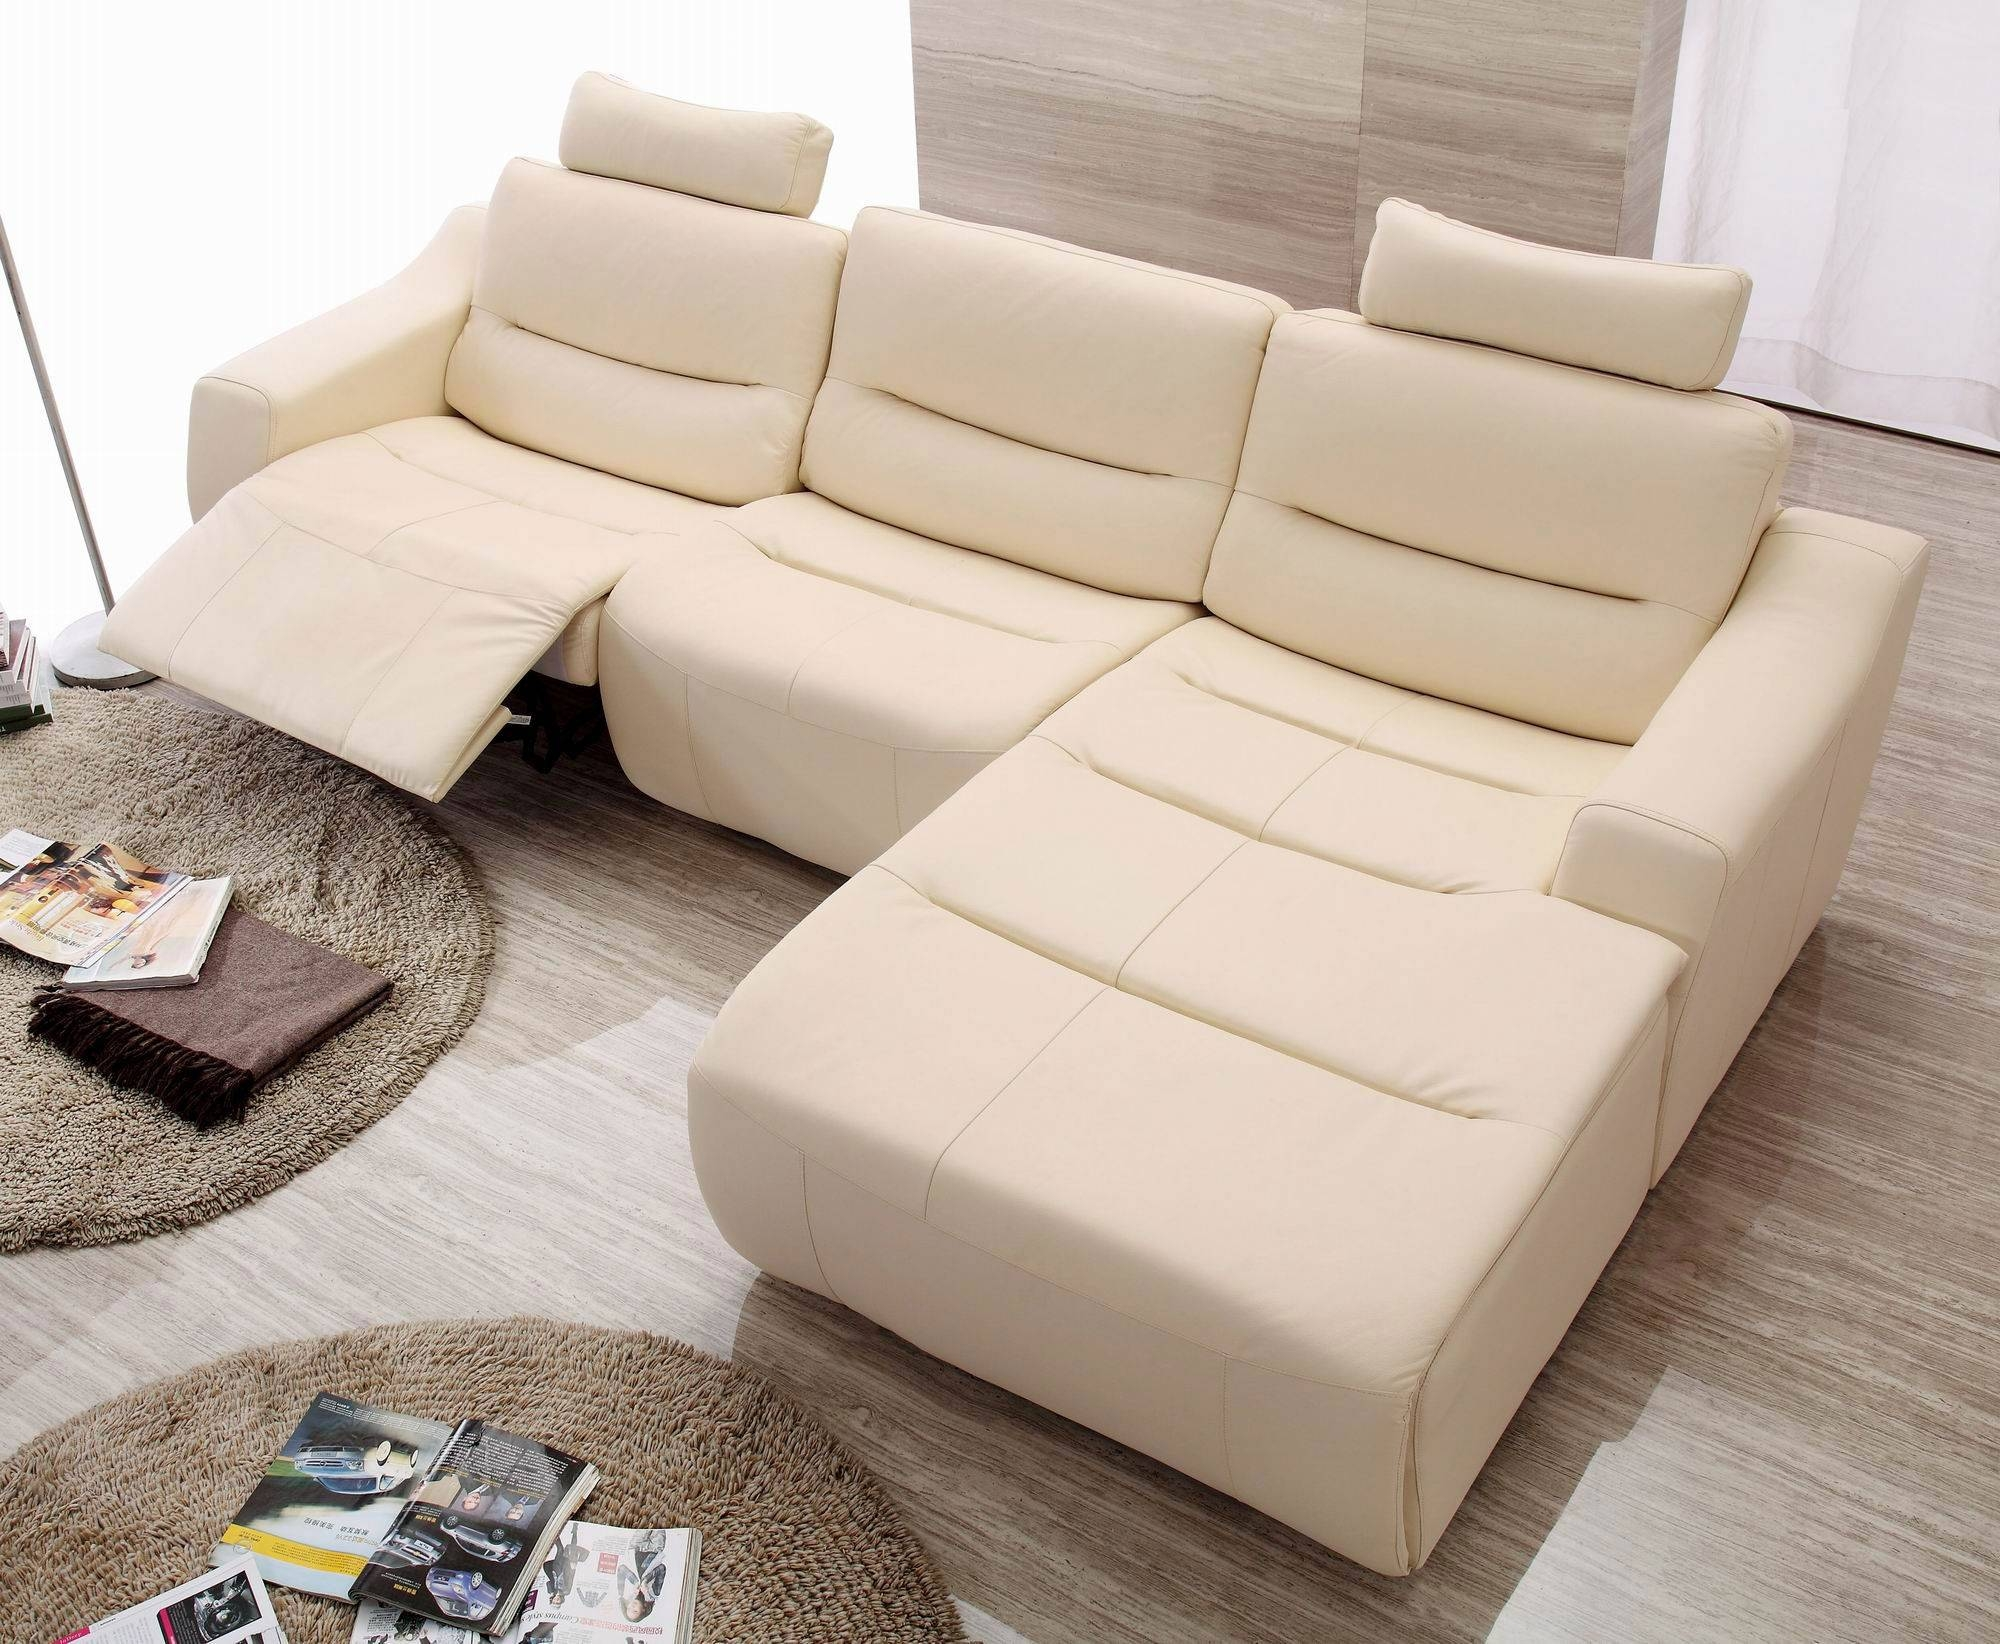 Contemporary Sectional Sofas For Small Spaces #9270 regarding Modern Sectional Sofas for Small Spaces (Image 6 of 25)